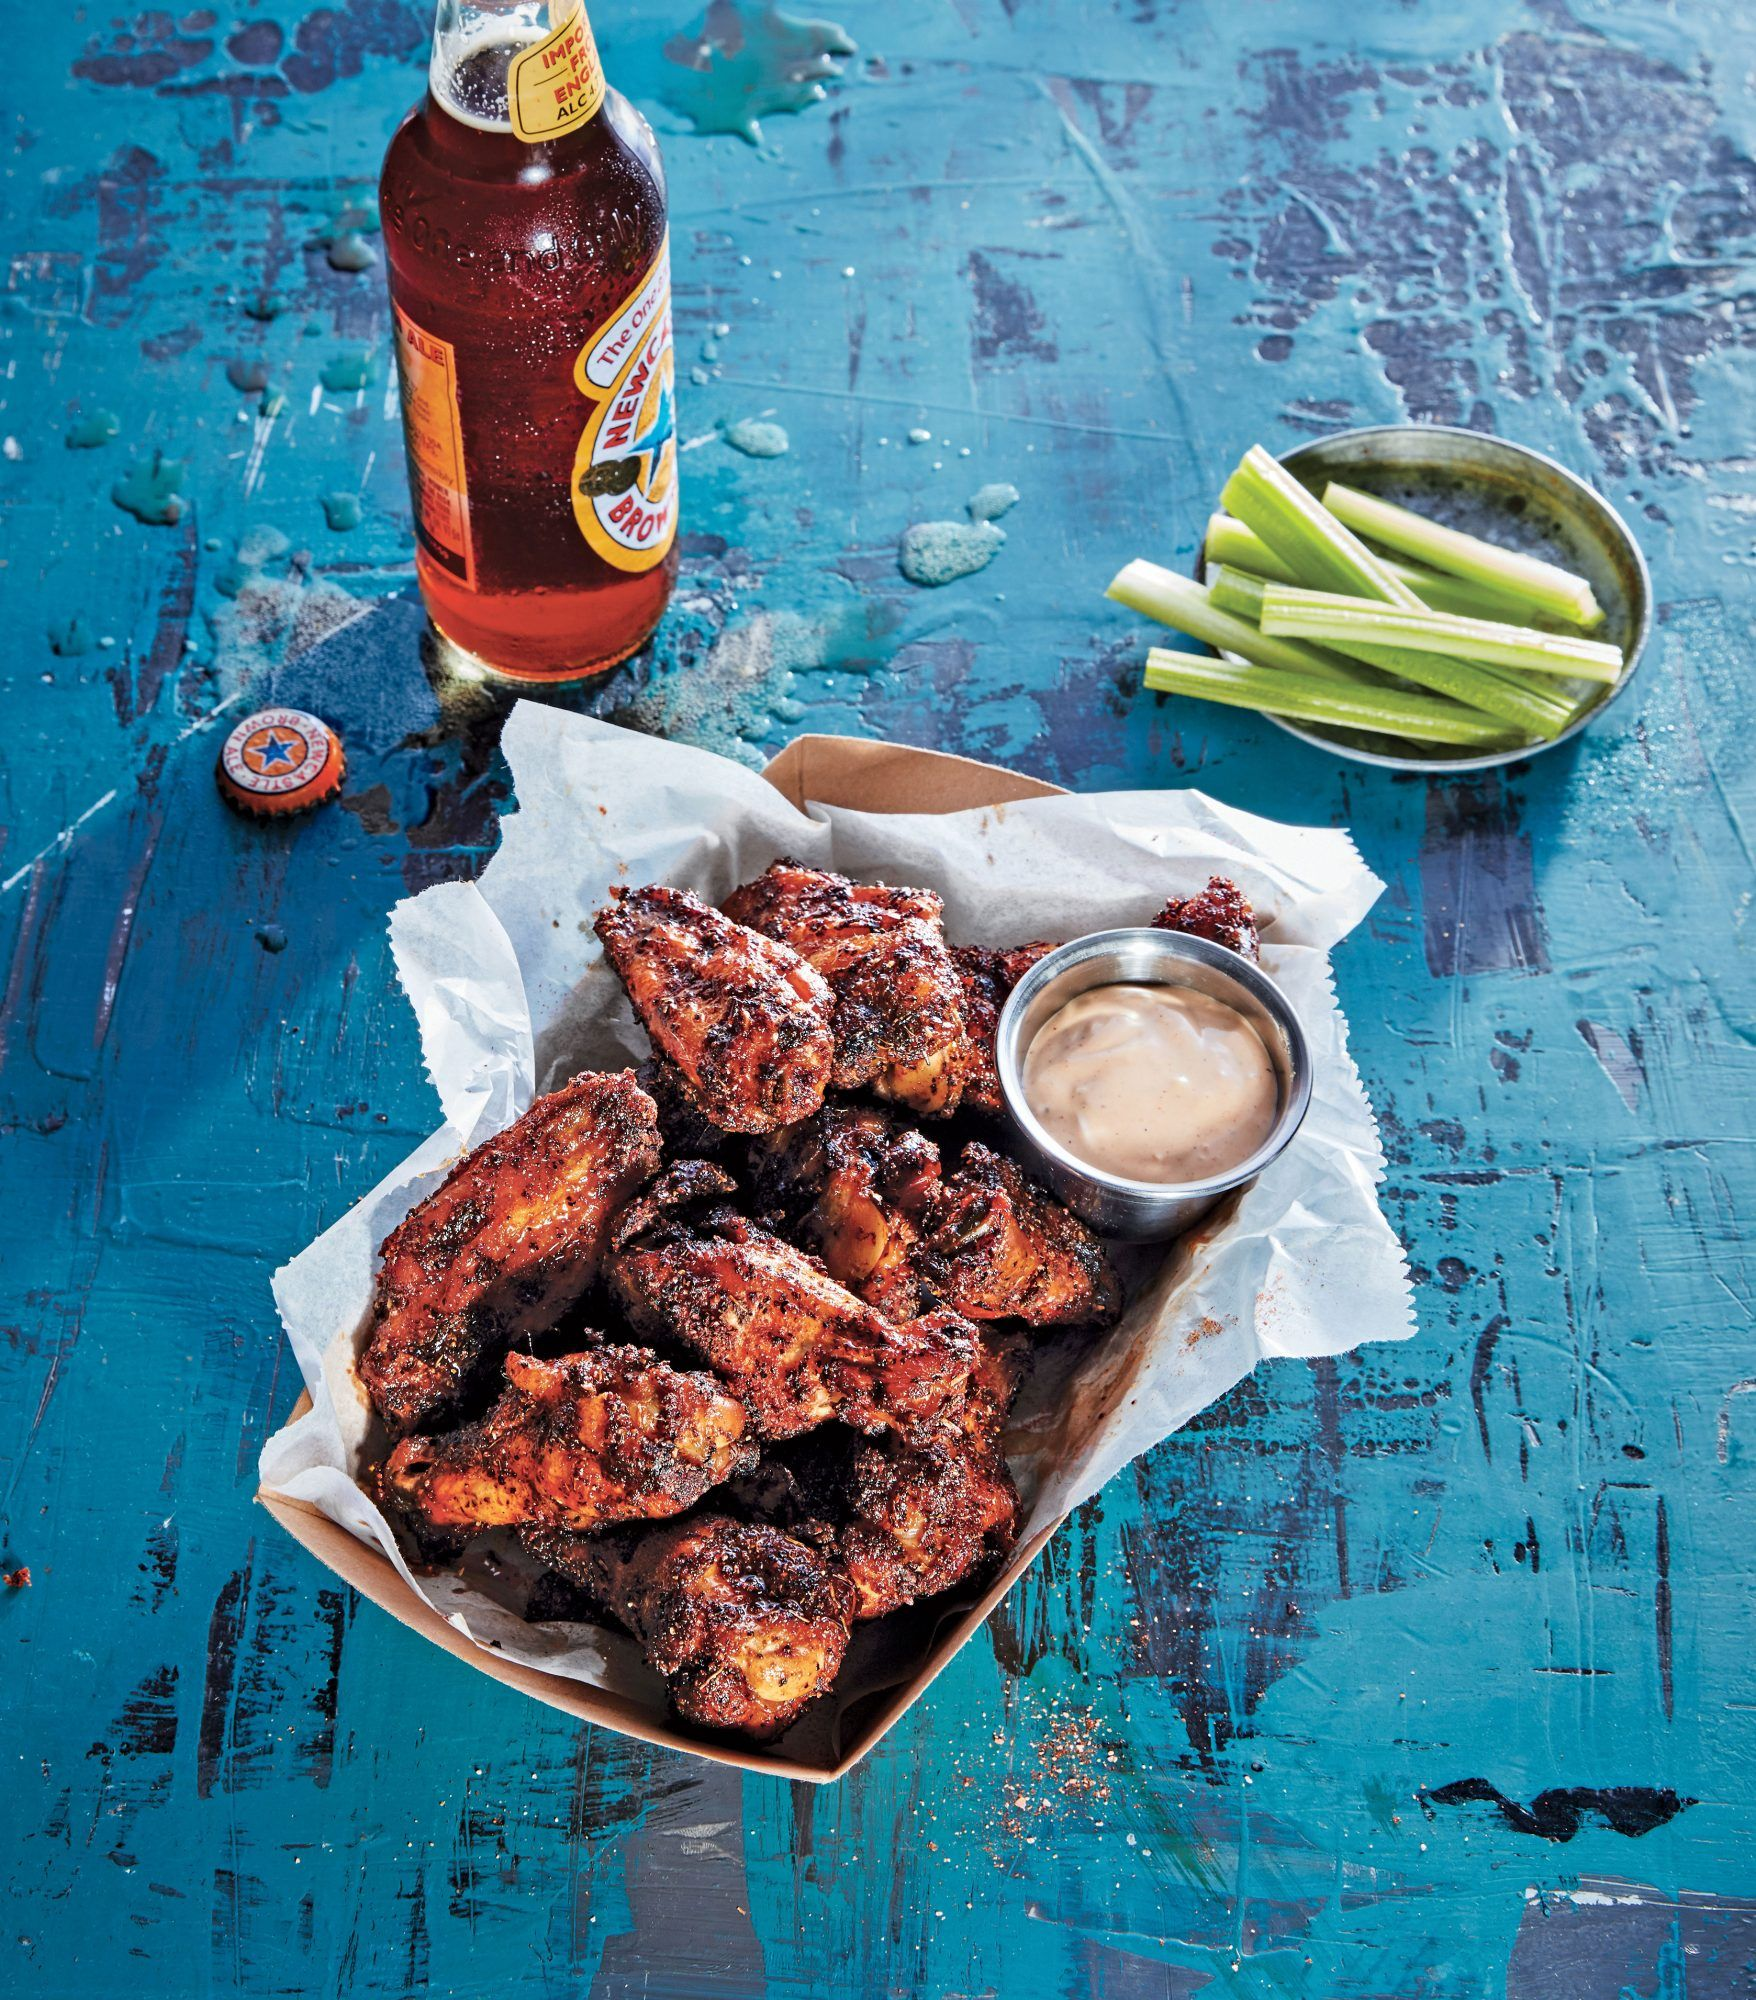 How To Reheat Chicken Wings Smoked Chicken Wings Smoked Chicken Chicken Wing Recipes